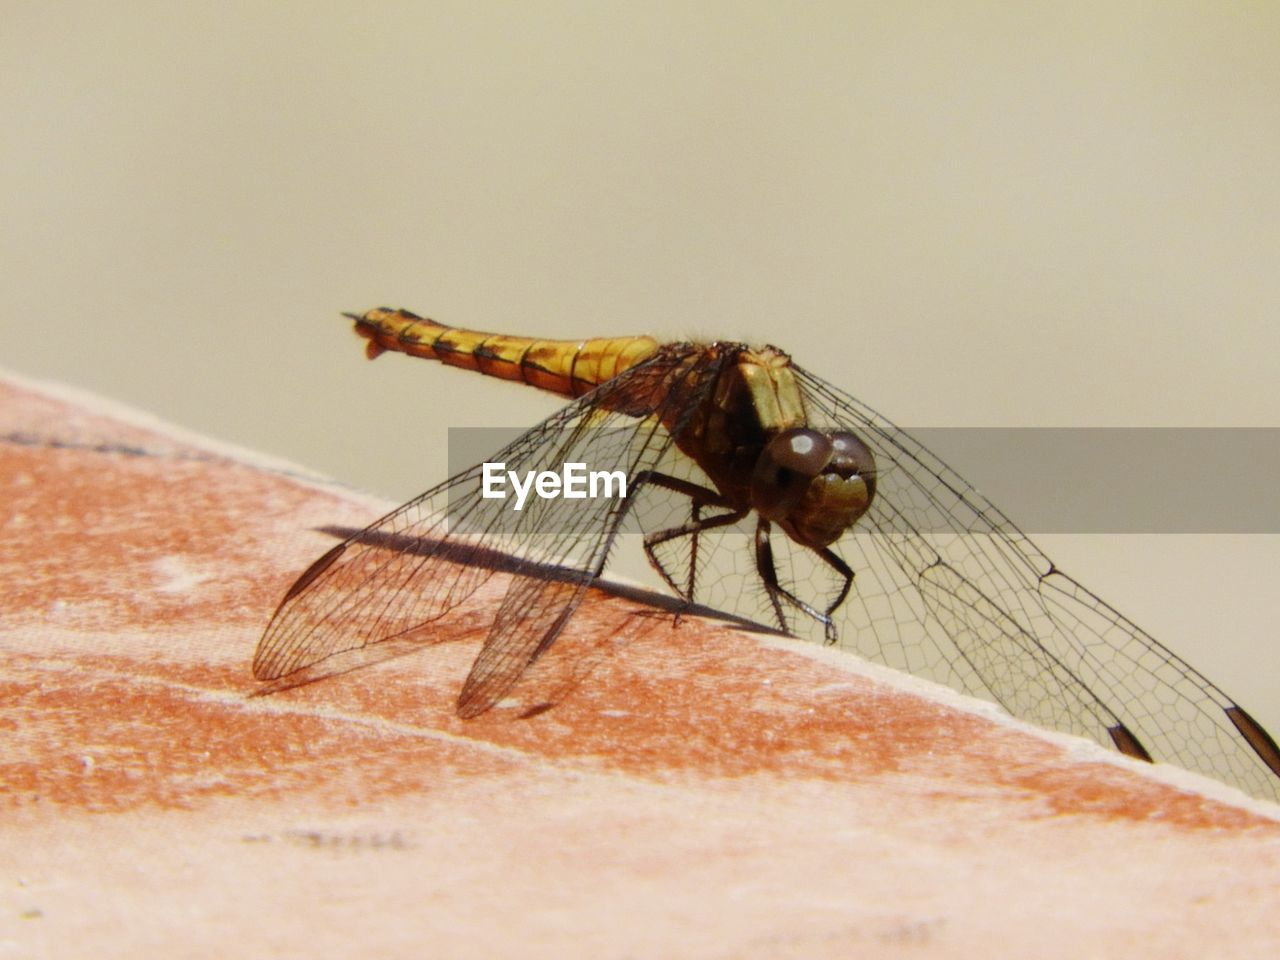 insect, animal themes, one animal, animals in the wild, close-up, day, no people, outdoors, nature